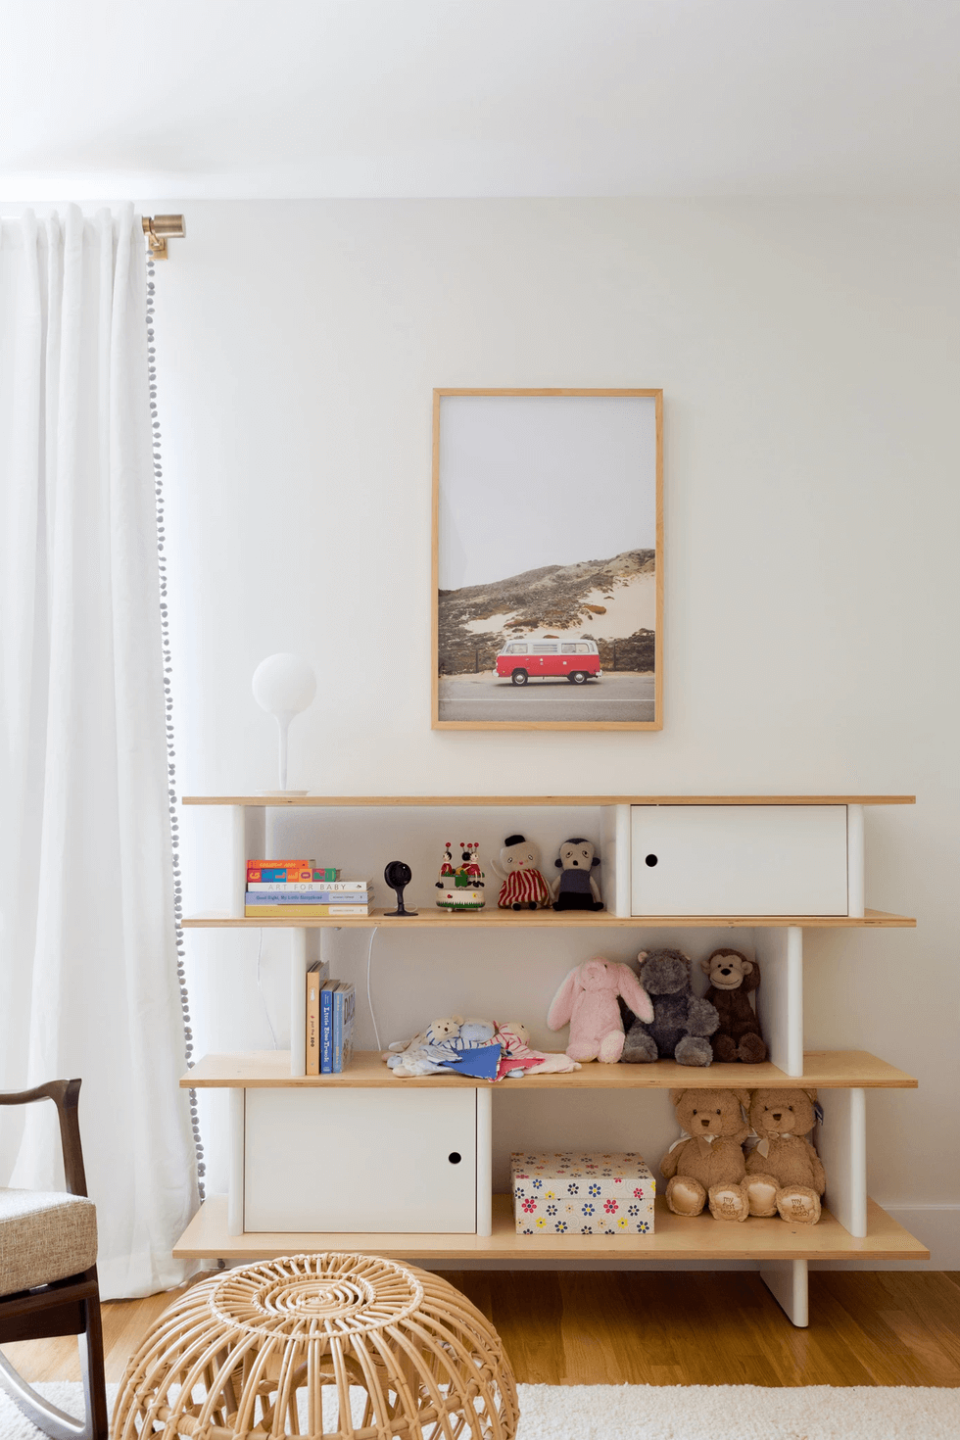 Fun with shelves - Clever DIY Toy Storage & Organization Ideas & Projects For Kids